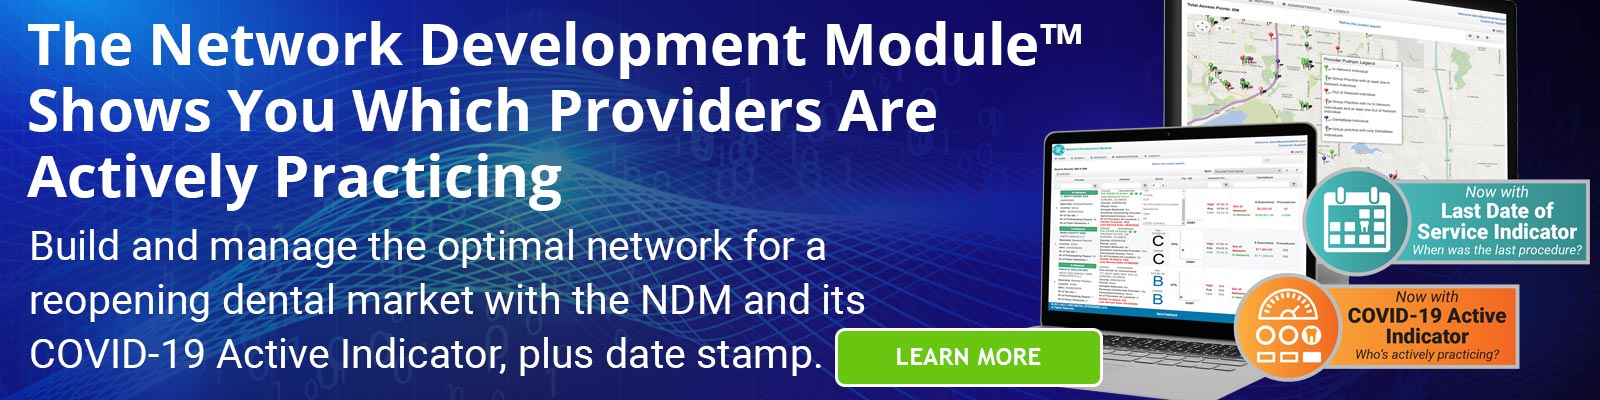 The Network Development Module Shows You Which Providers Are Actively Practicing - Click to learn more